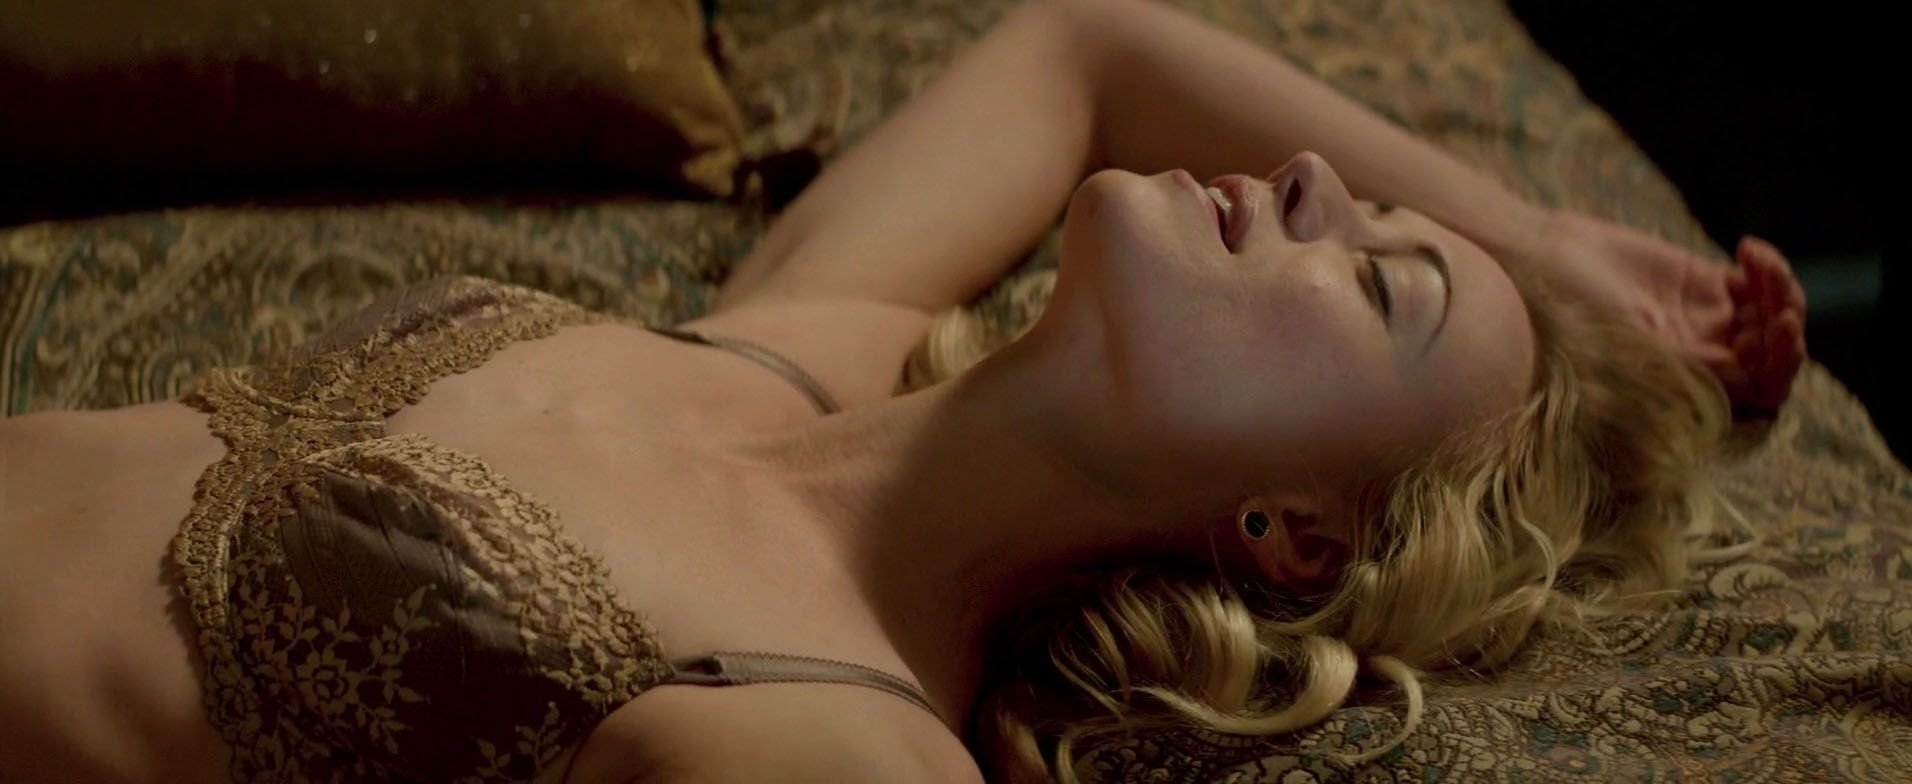 Yvonne strahovski nude manhattan night 2 7